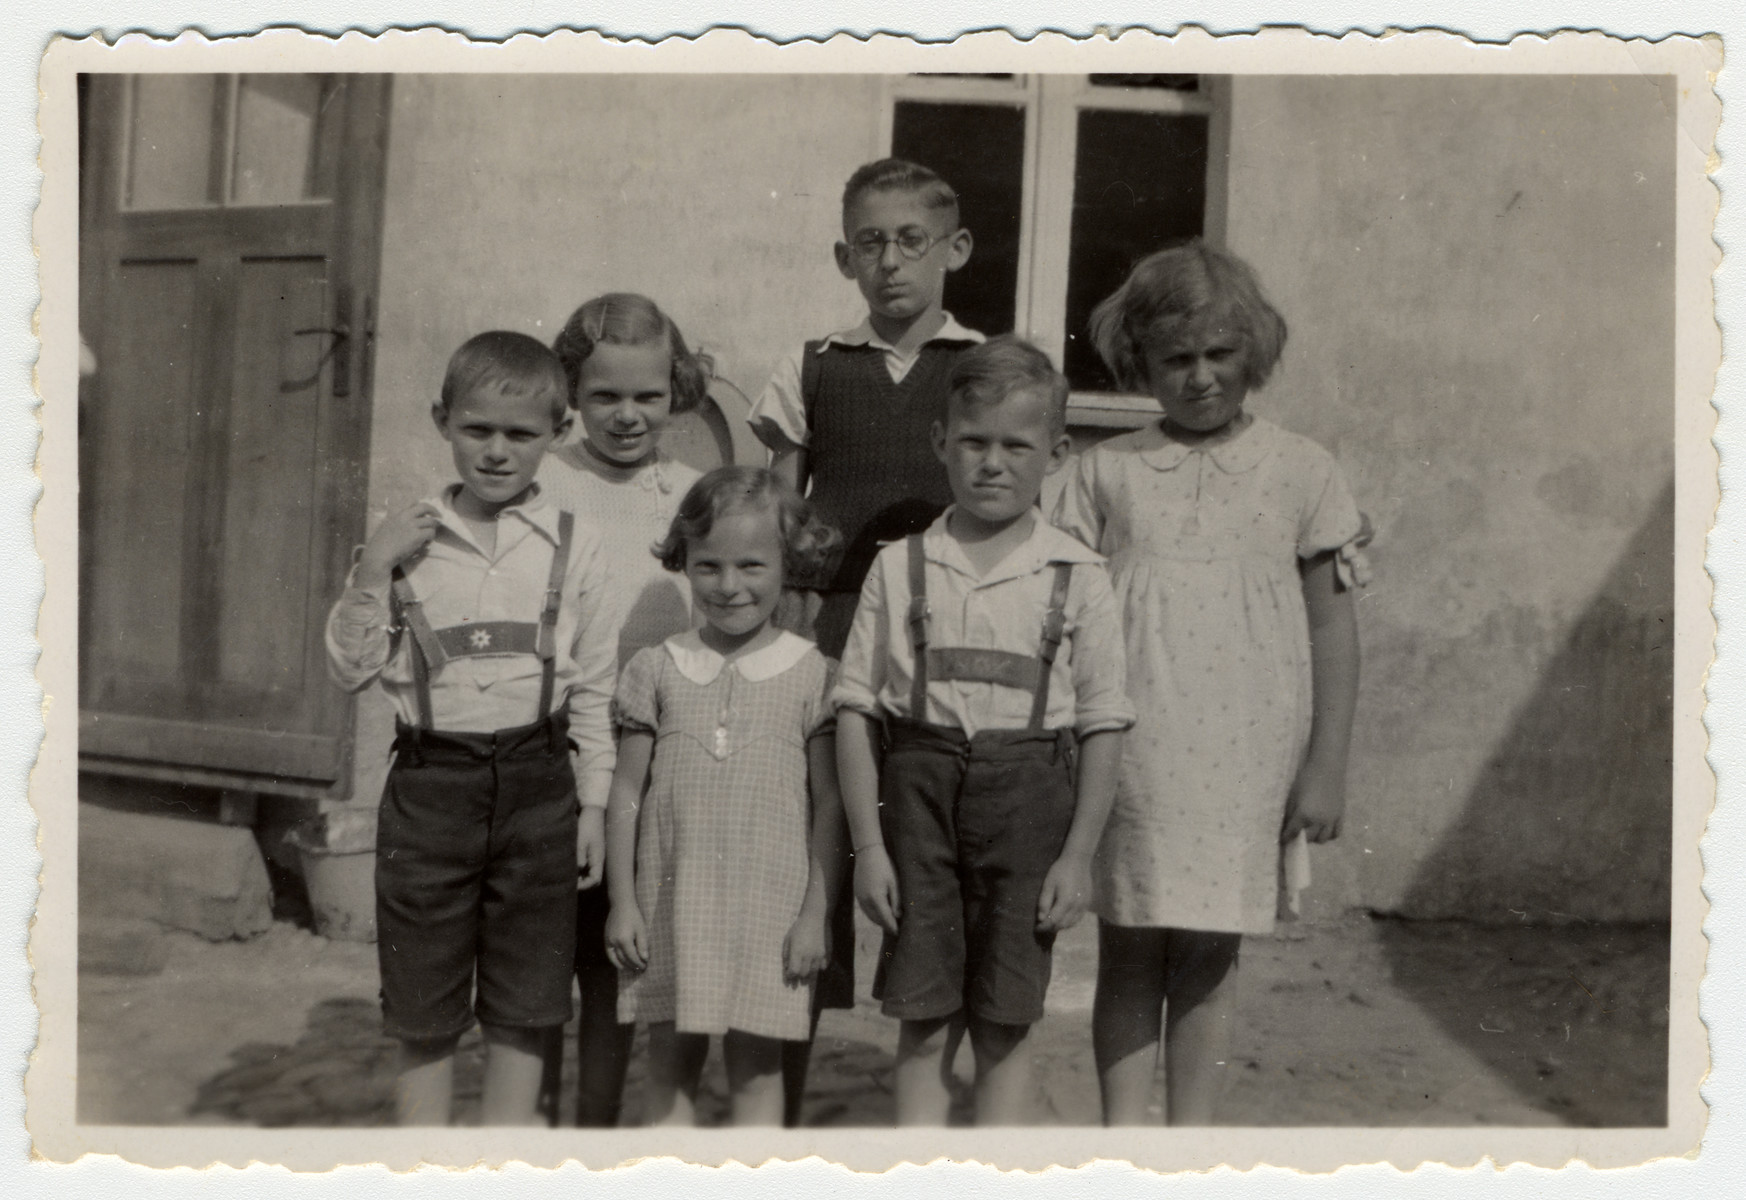 Six German-Jewish children pose in front of a building.  Pictured (left to right) are siblings Walter, Ilse, and Ruth Karliner; Horst Scheuer, Herbert Karliner, and Gerda Karliner.